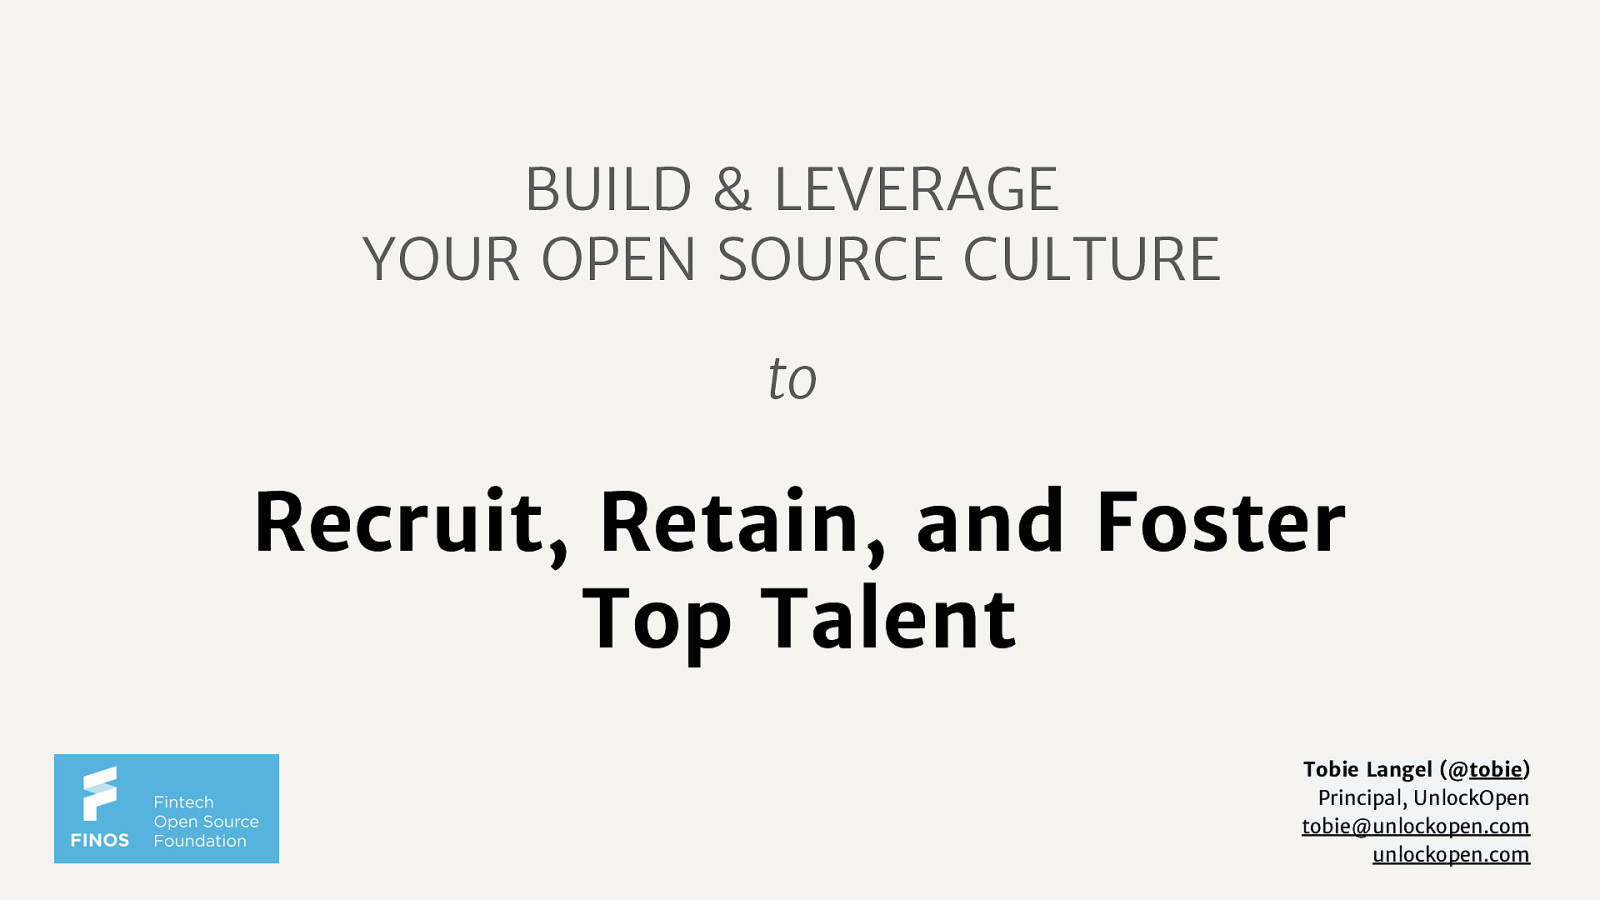 Build and leverage your open source culture to recruit, retain, and foster top talent